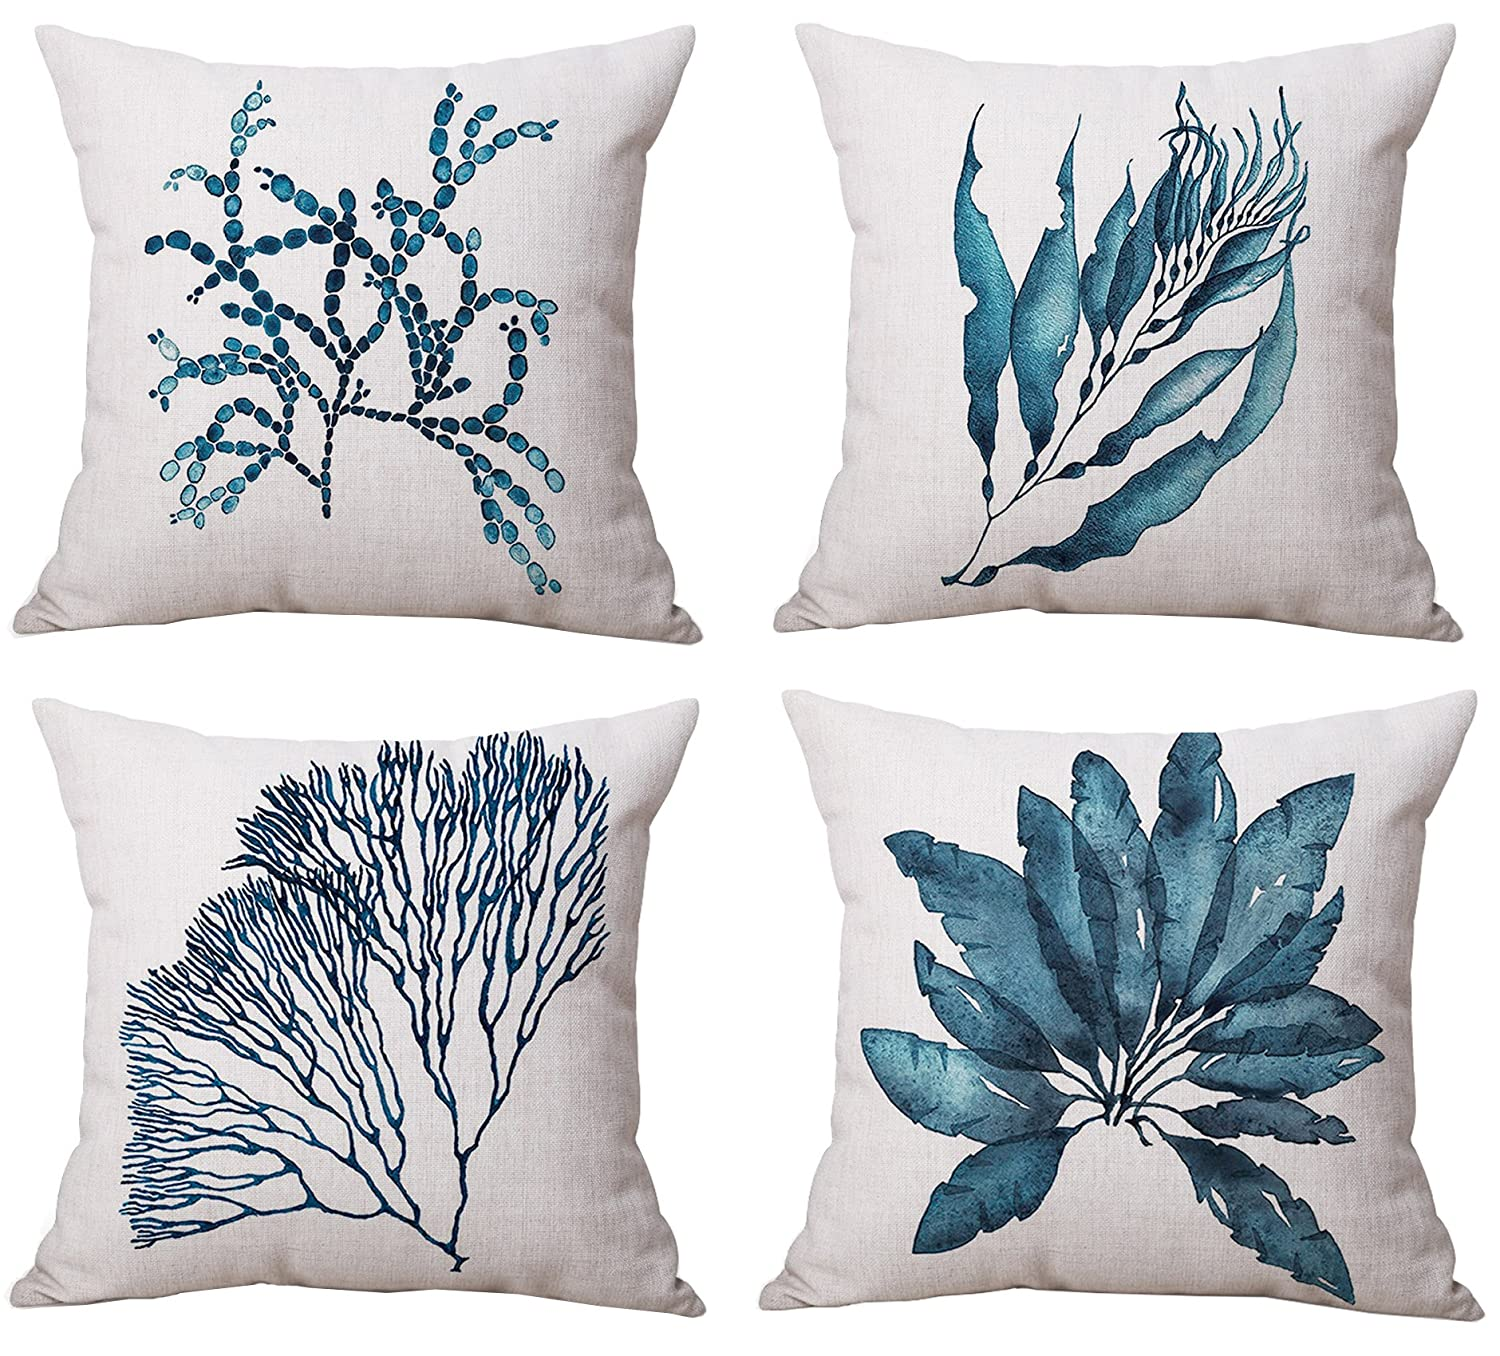 Round Merry Pillows 18 Cotton Linen Throw Pillow Covers Cases Office Sofa Cushion Covers Black